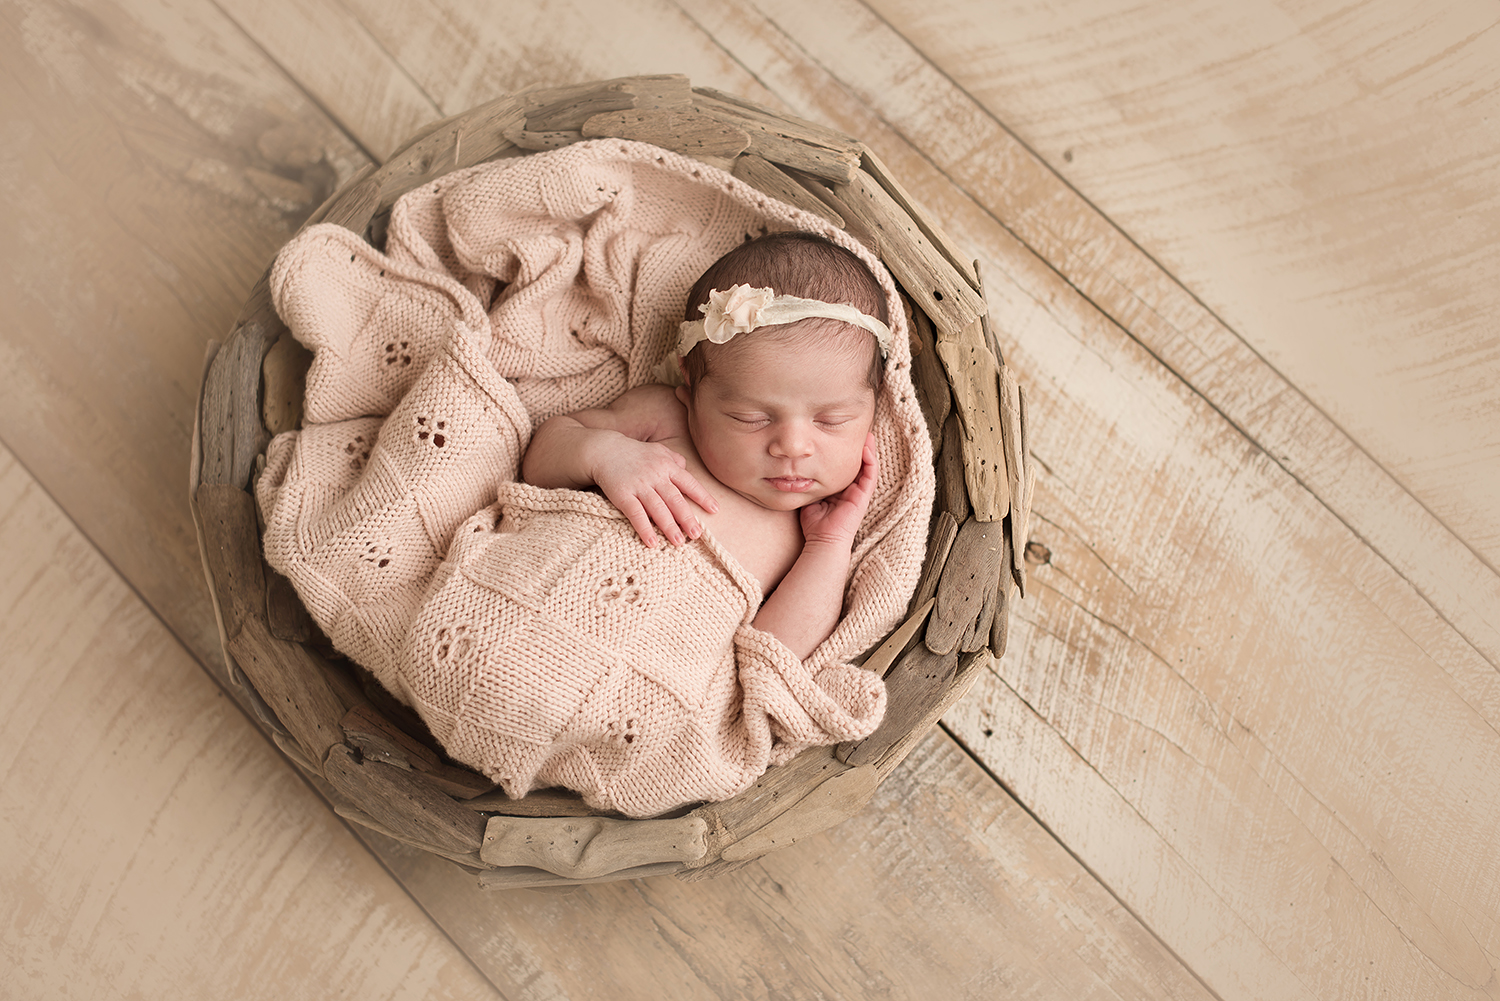 bexley-ohio-newborn-photographer-barebabyphotography.jpg